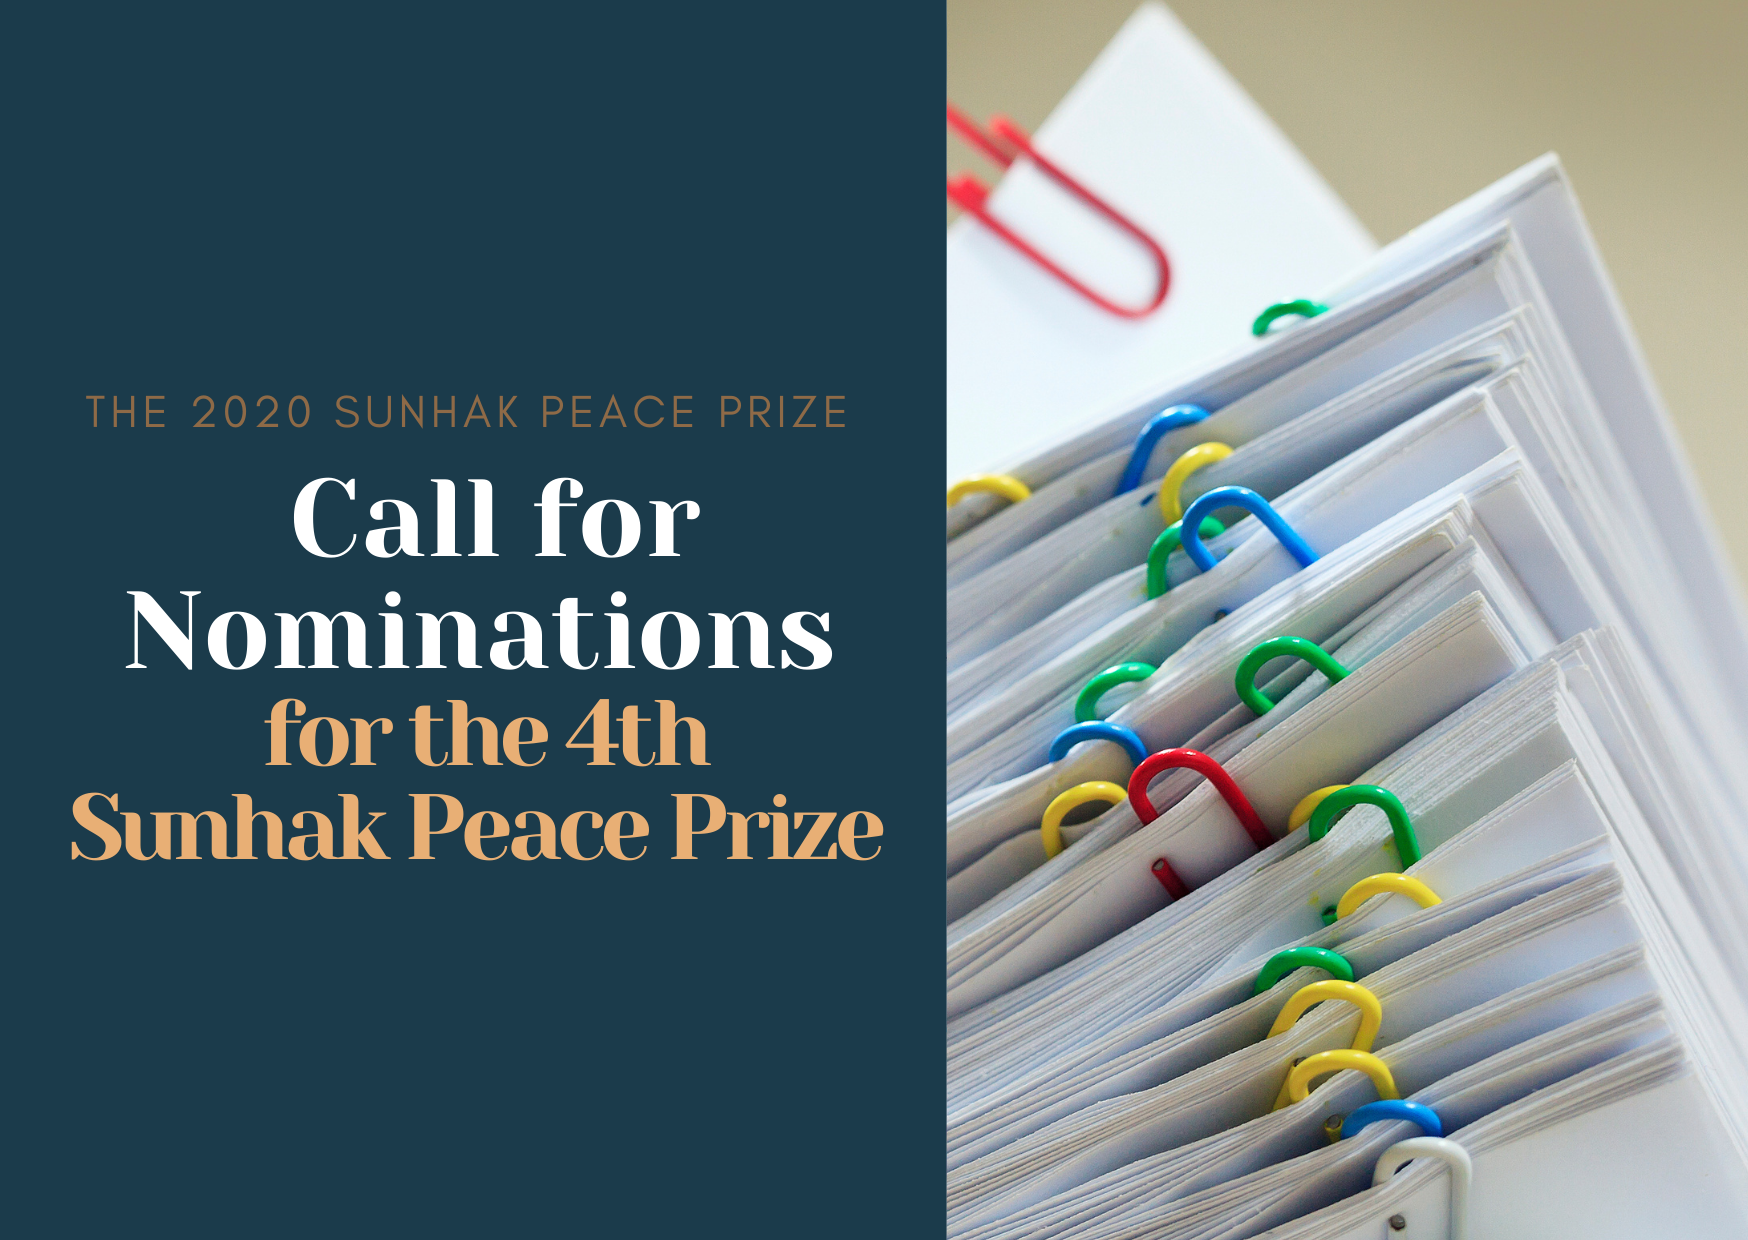 Call for Nominations for the 4th Sunhak Peace Prize 썸네일